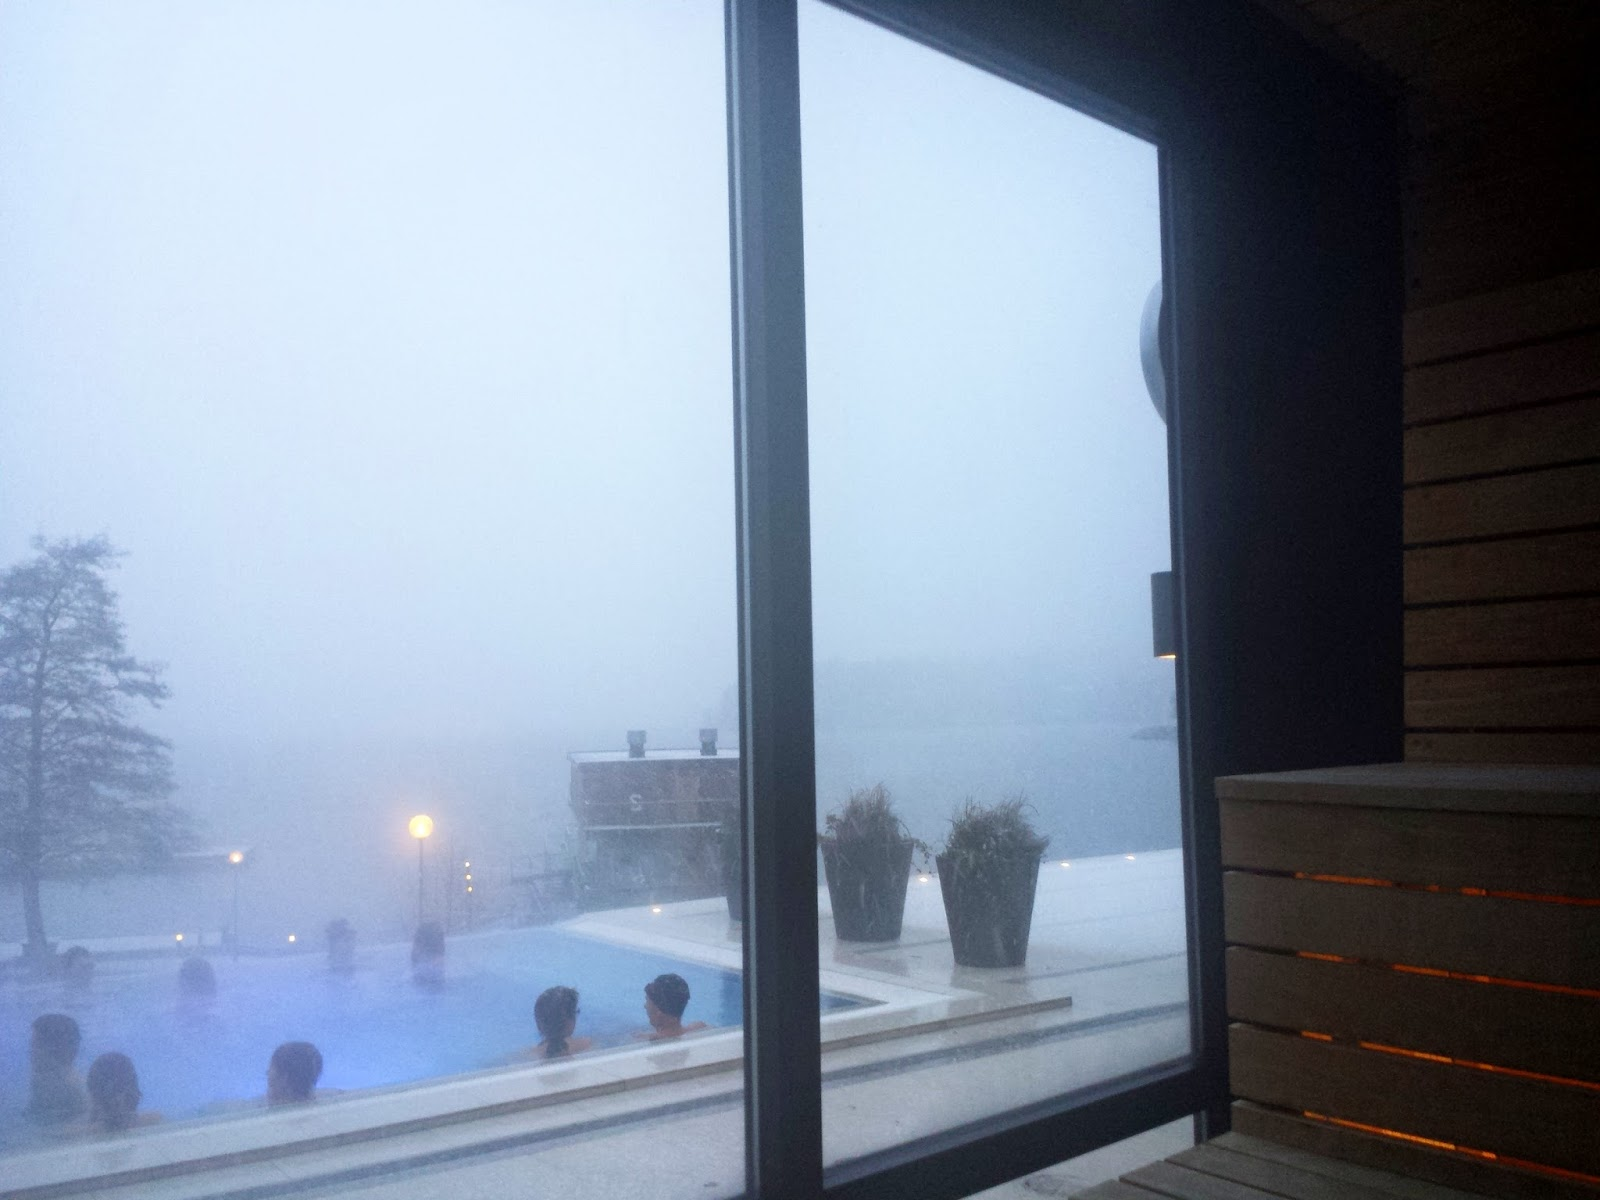 Skepparholmen Spa Hotel bastu sauna in Nacka, Stockholm + Swedish sauna customs  |  Swedish sauna rituals and snow flurries by the sea on afeathery*nest  |  http://afeatherynest.com